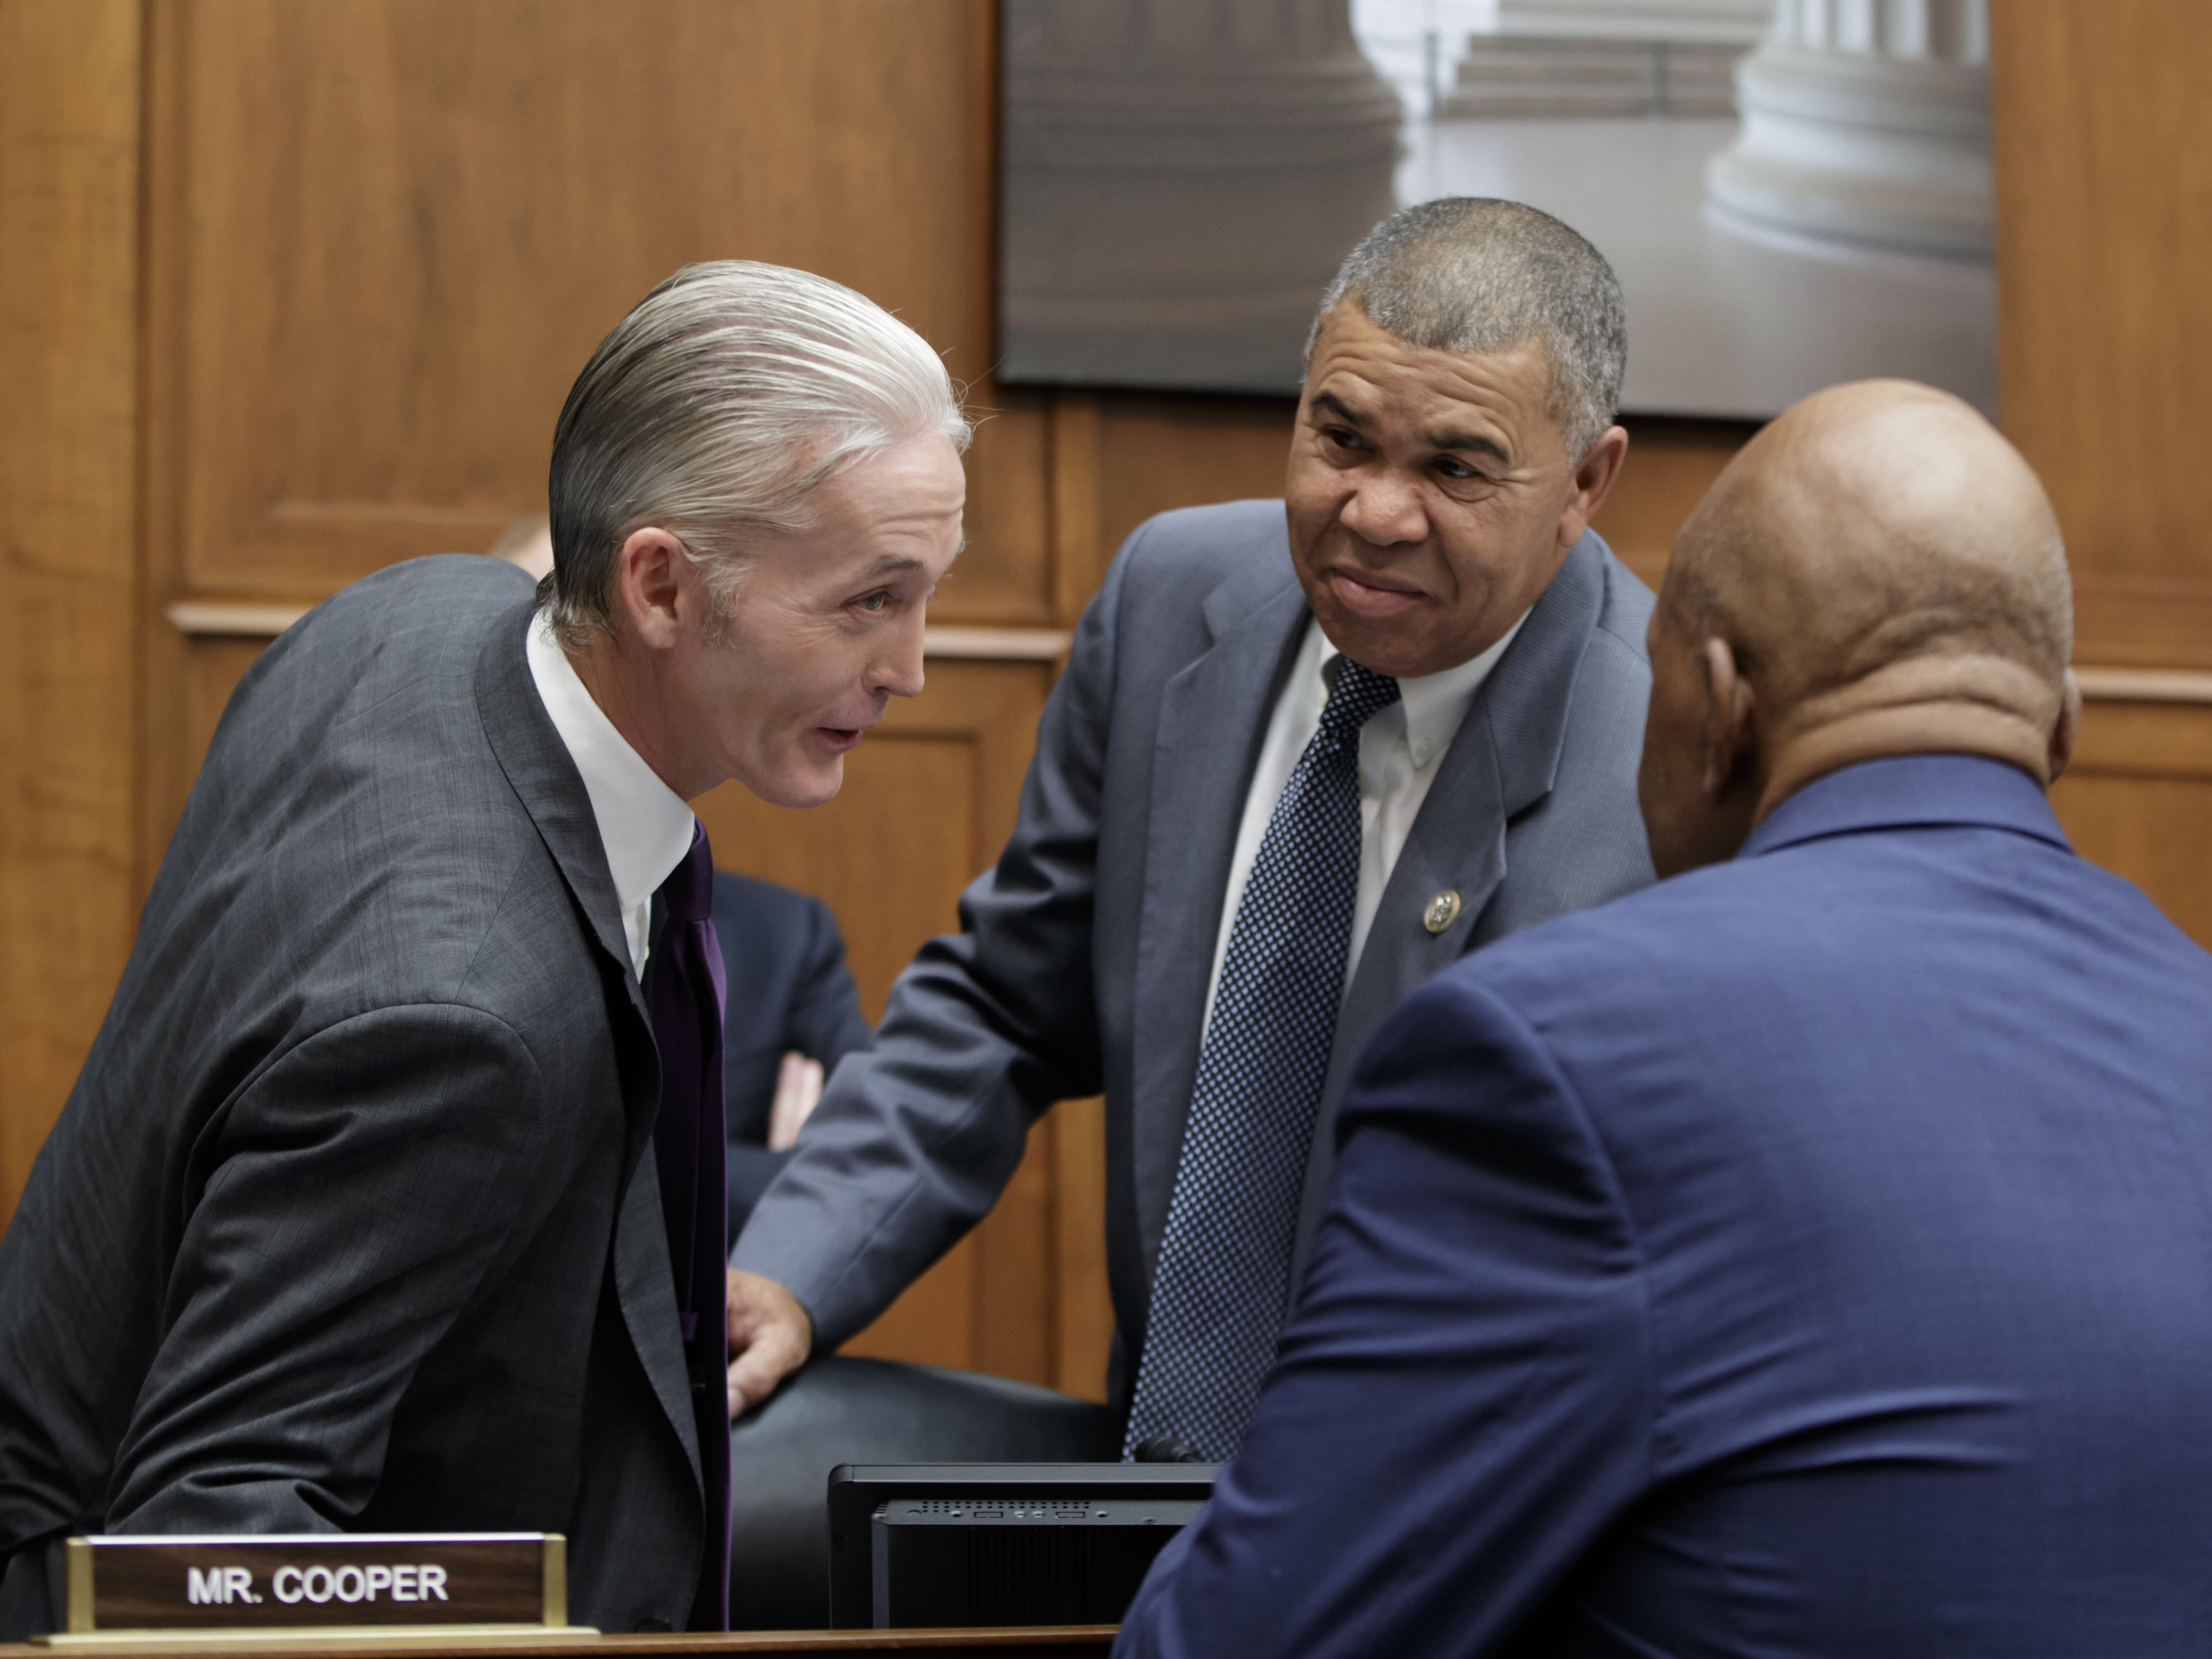 FILE - In this Oct. 12, 2017, file photo, Rep. Trey Gowdy, R-S.C., chairman of the Committee on Oversight and Government Reform, confers with Rep. William Lacy Clay, D-Mo., and Rep. Elijah Cummings, D-Md., the ranking member, before a hearing on preparations for the 2020 Census, on Capitol Hill in Washington. Cori Bush, a onetime homeless woman who led protests following a white police officer's fatal shooting of a Black 18-year-old in Ferguson, Mo., ousted longtime Rep. Clay on Tuesday, Aug. 4, 2020, in Missouri's Democratic primary, ending a political dynasty that has spanned more than a half-century. Bush's victory came in a rematch of 2018, when she failed to capitalize on a national Democratic wave that favored political newcomers such as Bush's friend, Rep. Alexandria Ocasio-Cortez. (AP Photo/J. Scott Applewhite, File)